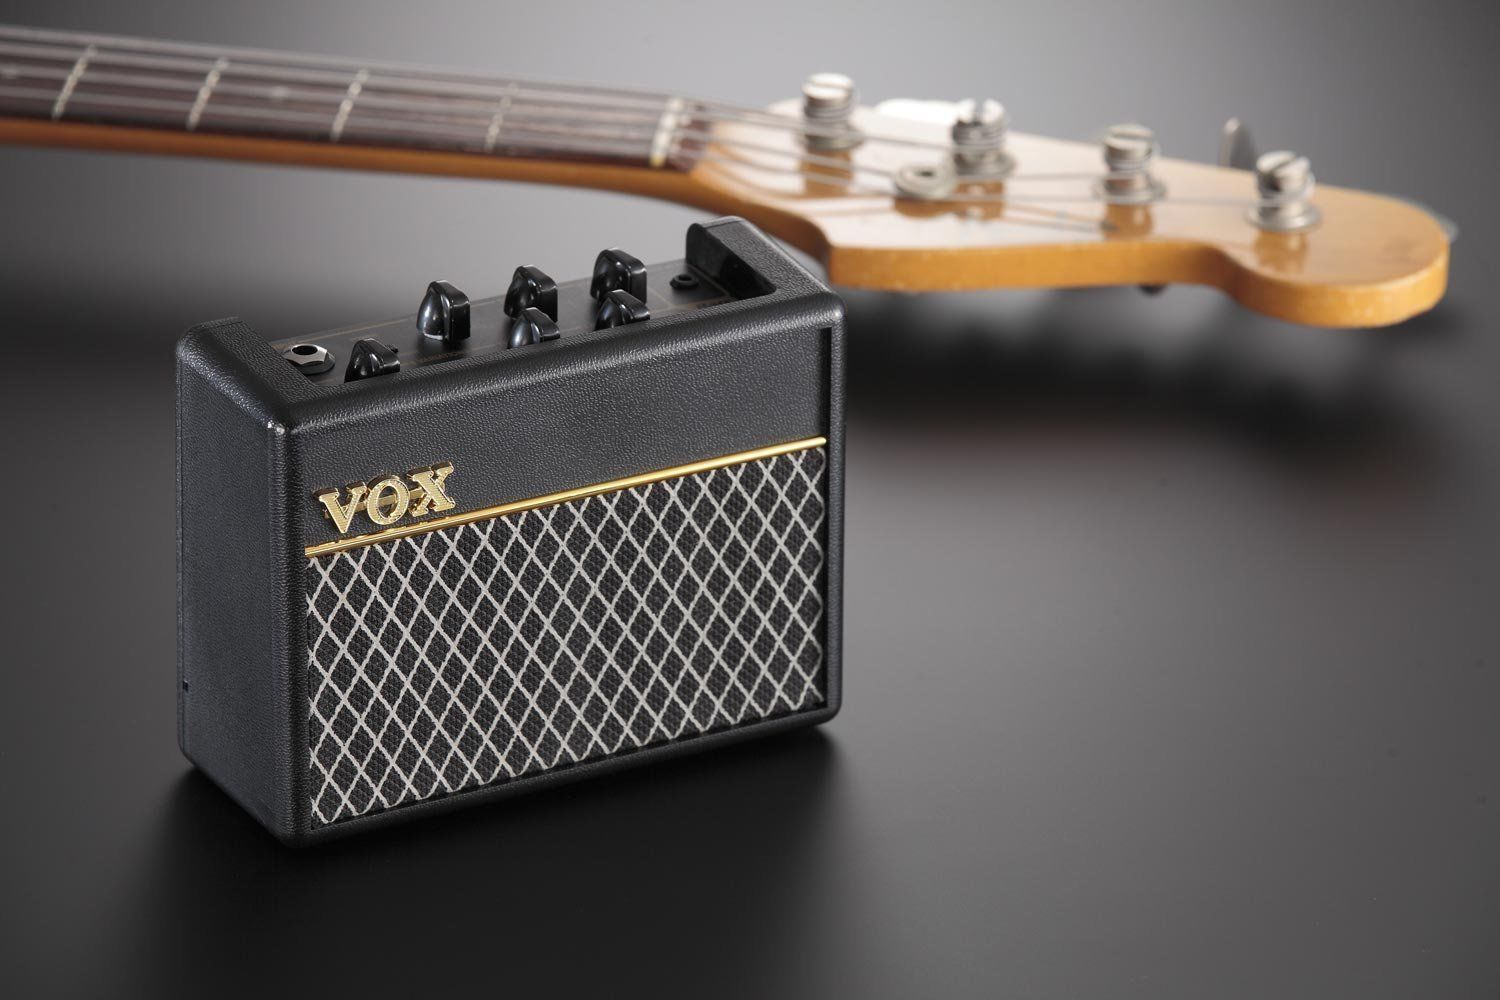 vox ac2 rhythm mini bass guitar amplifier inc drums ac2rv bass. Black Bedroom Furniture Sets. Home Design Ideas